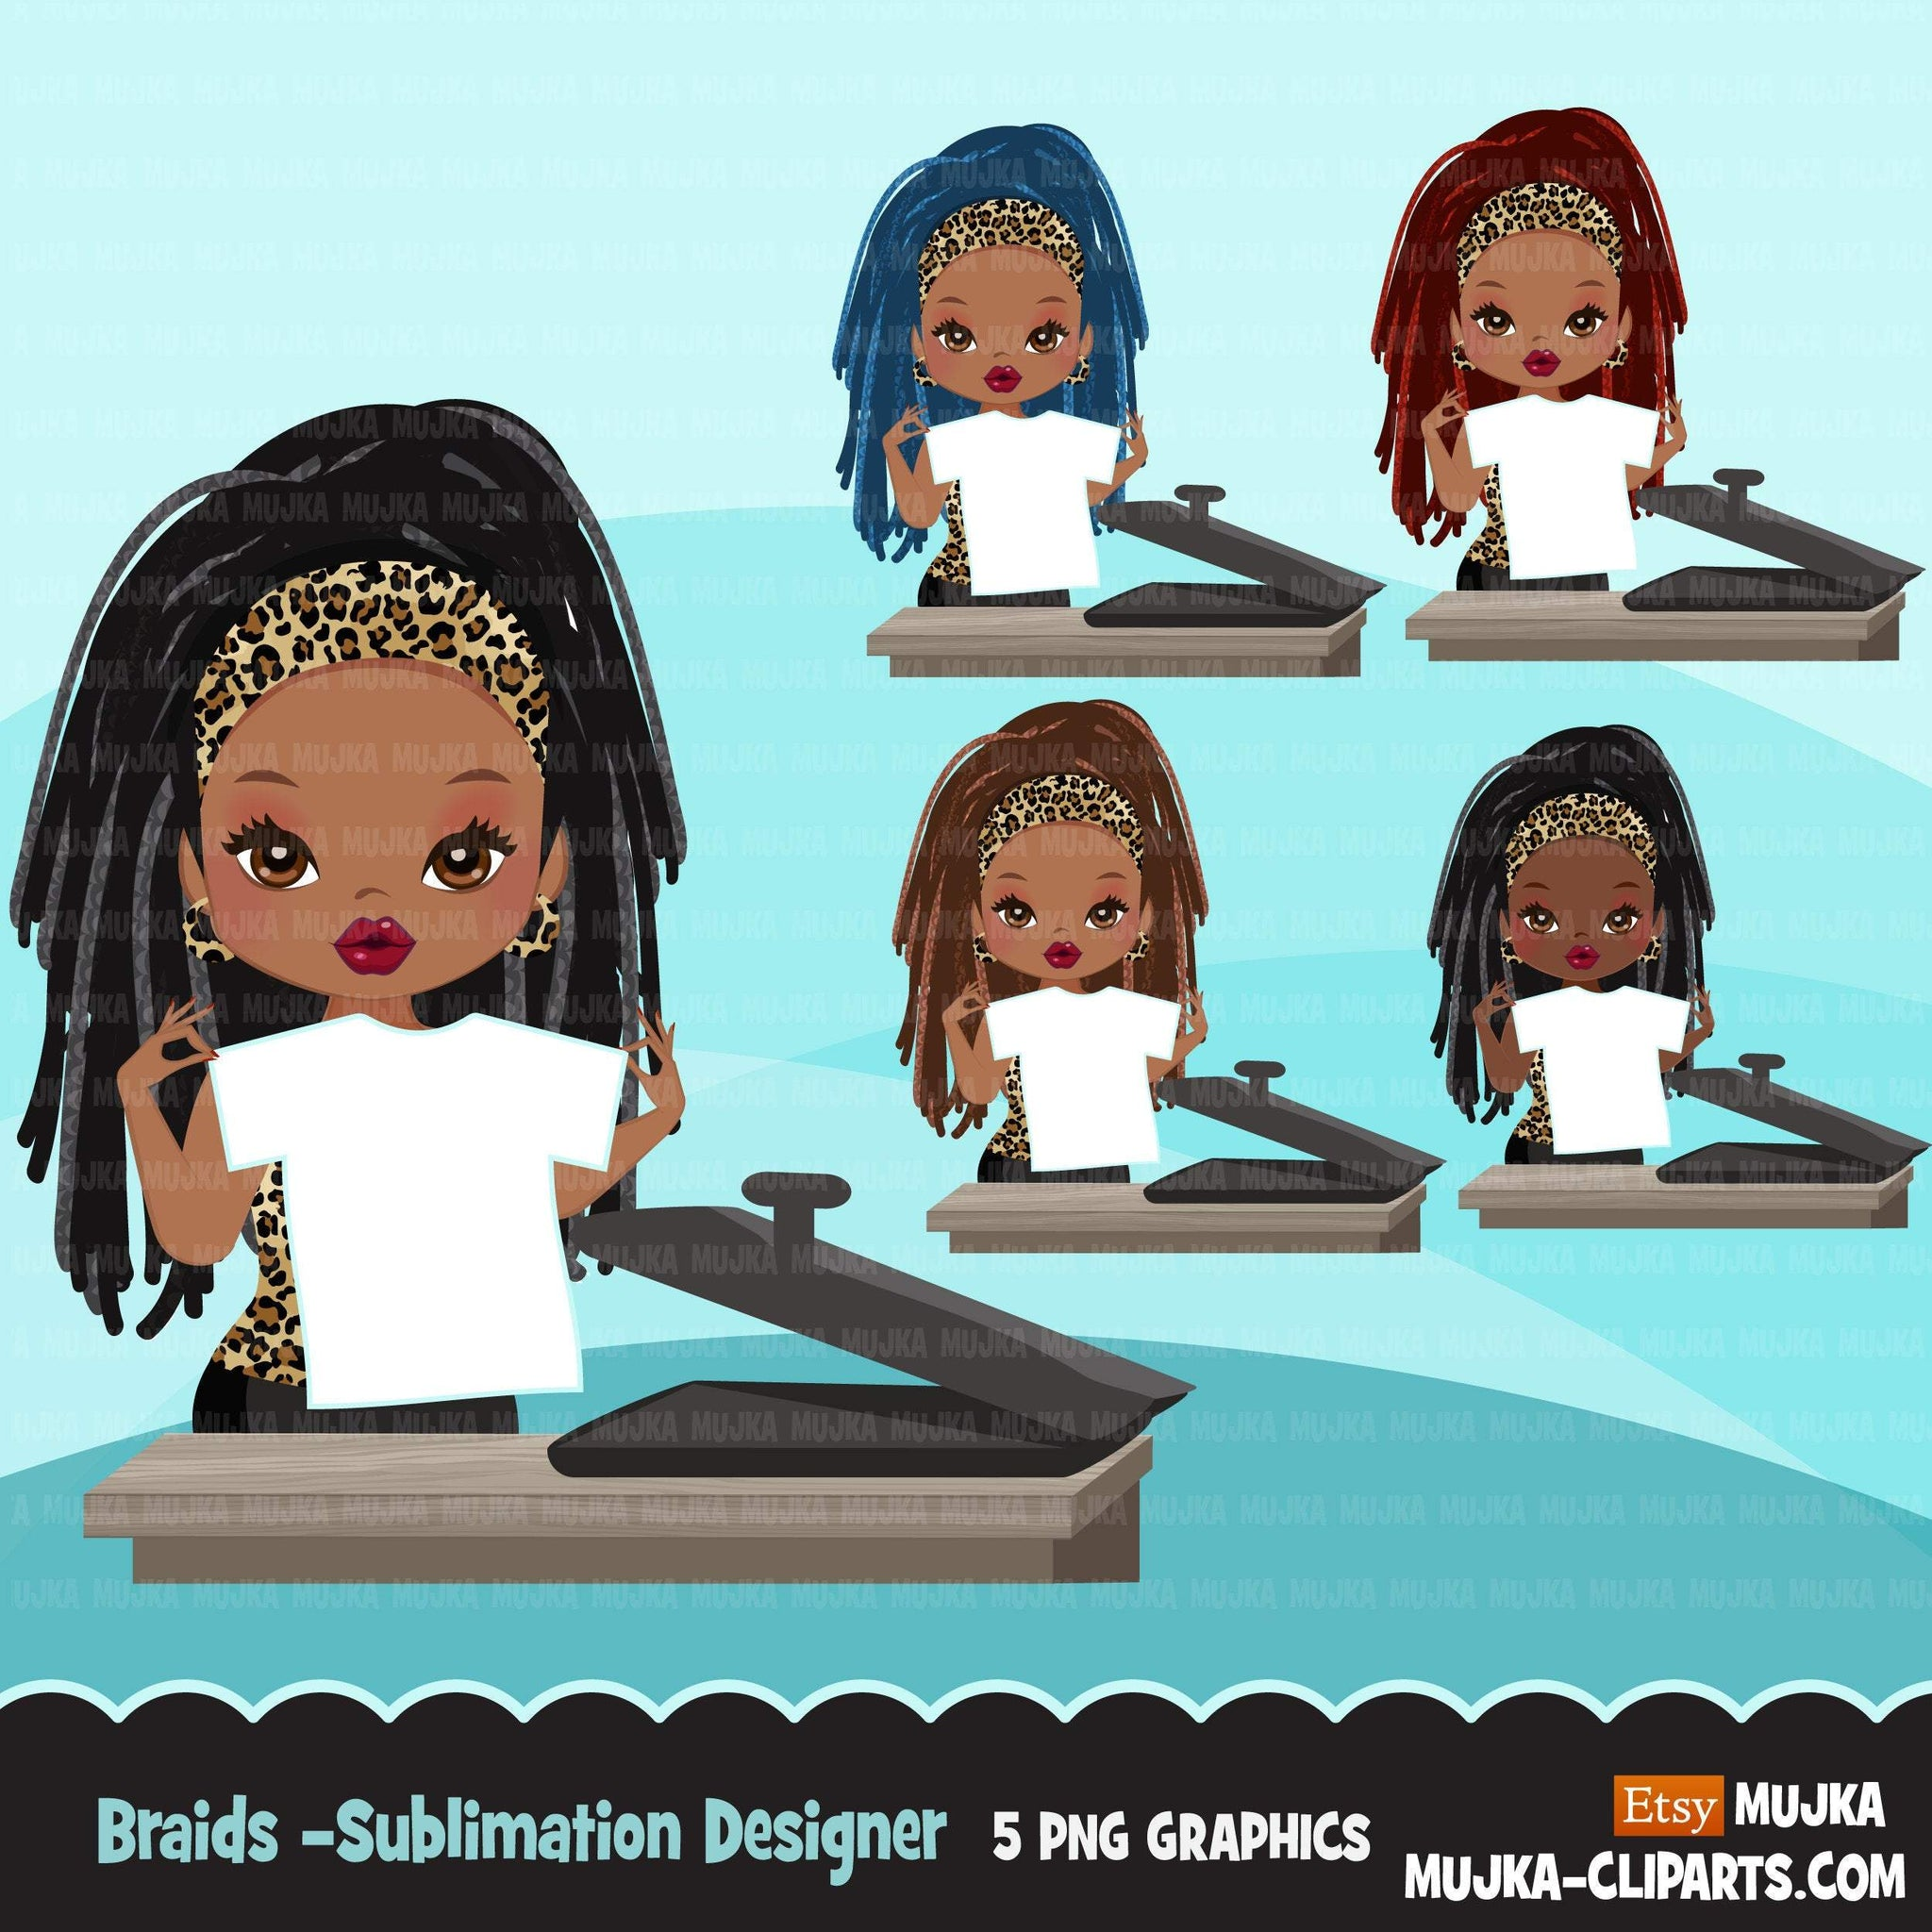 Black Woman business avatar clipart with heat press, sublimation designer, print and cut, business braids afro girl clip art